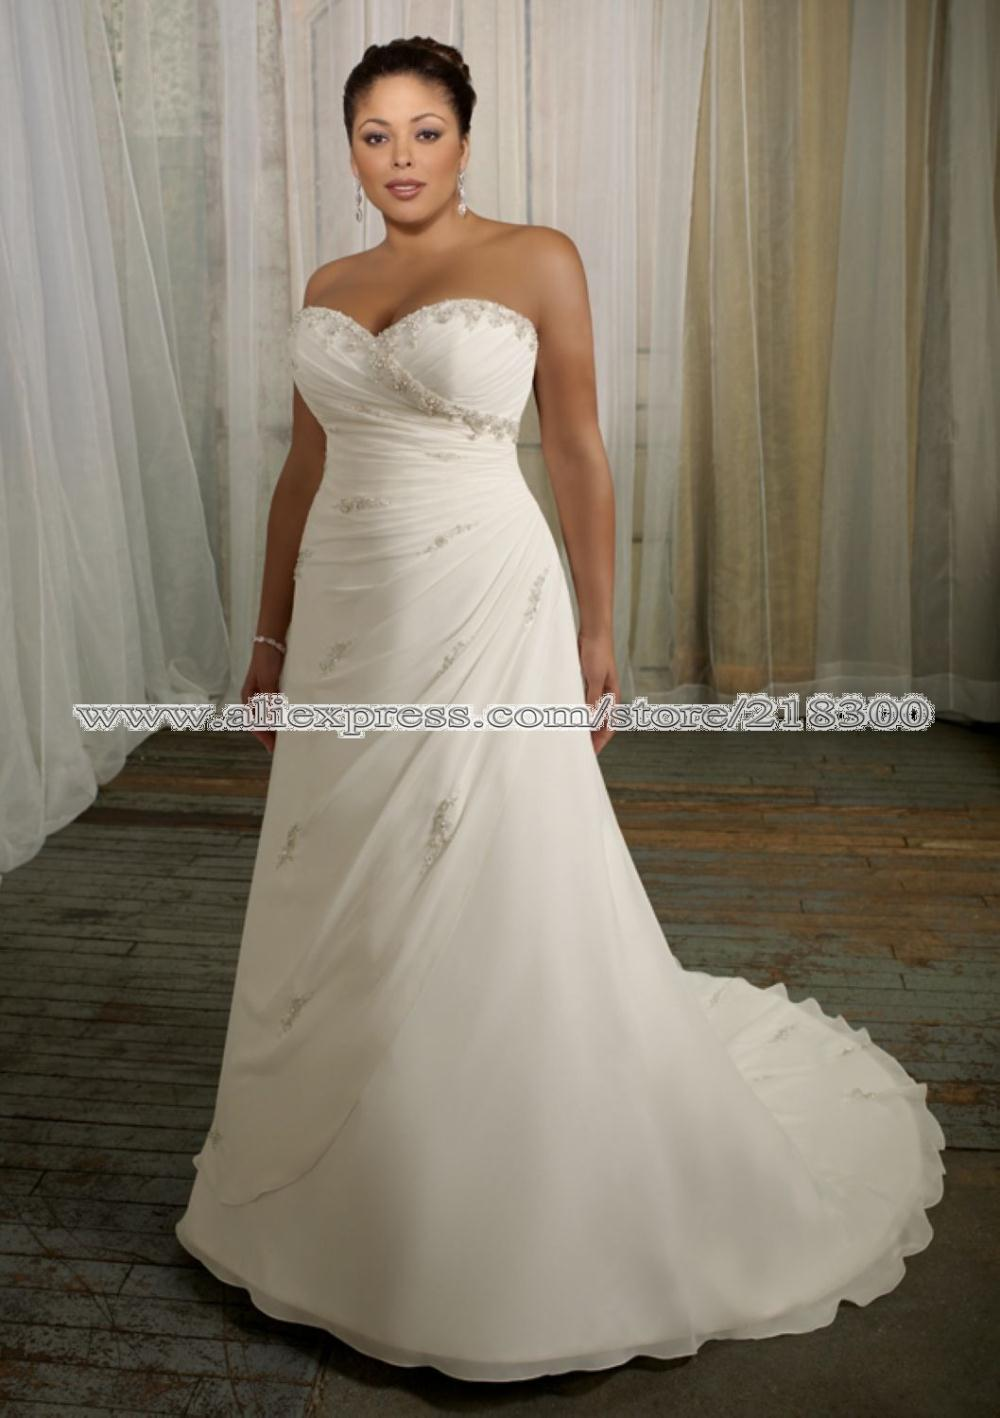 Popular full figured bridal gowns aliexpress for Full size wedding dresses